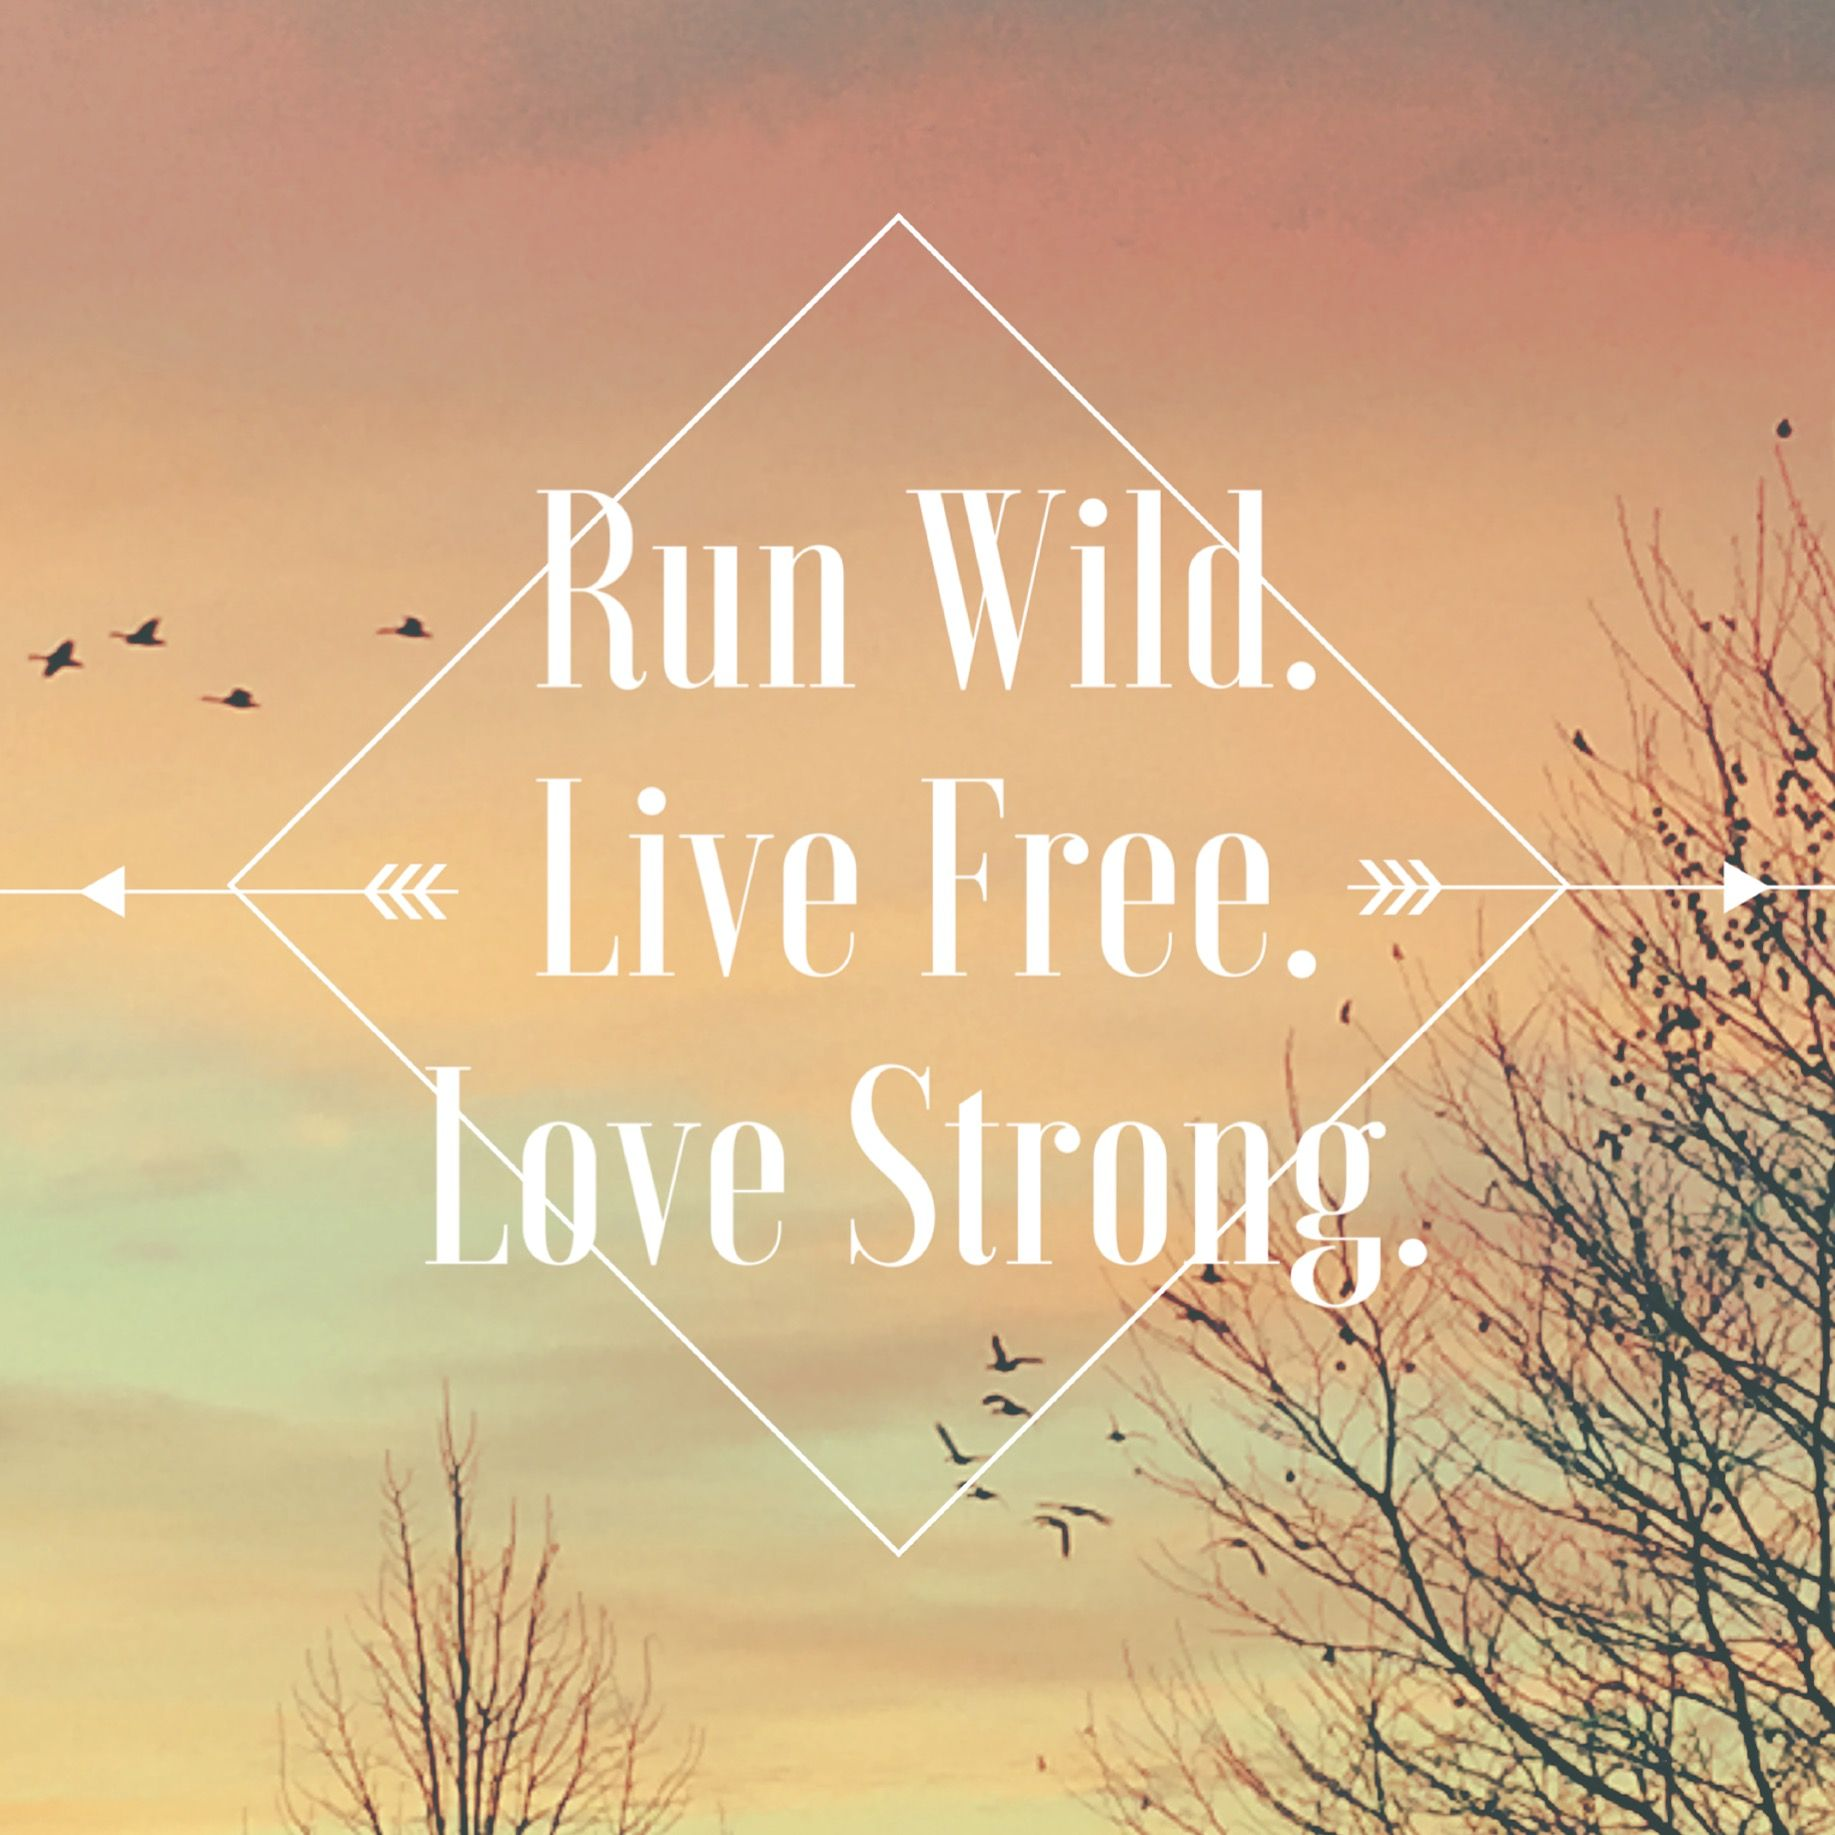 Run Wild. Live Free. Love Strong. For King And Country